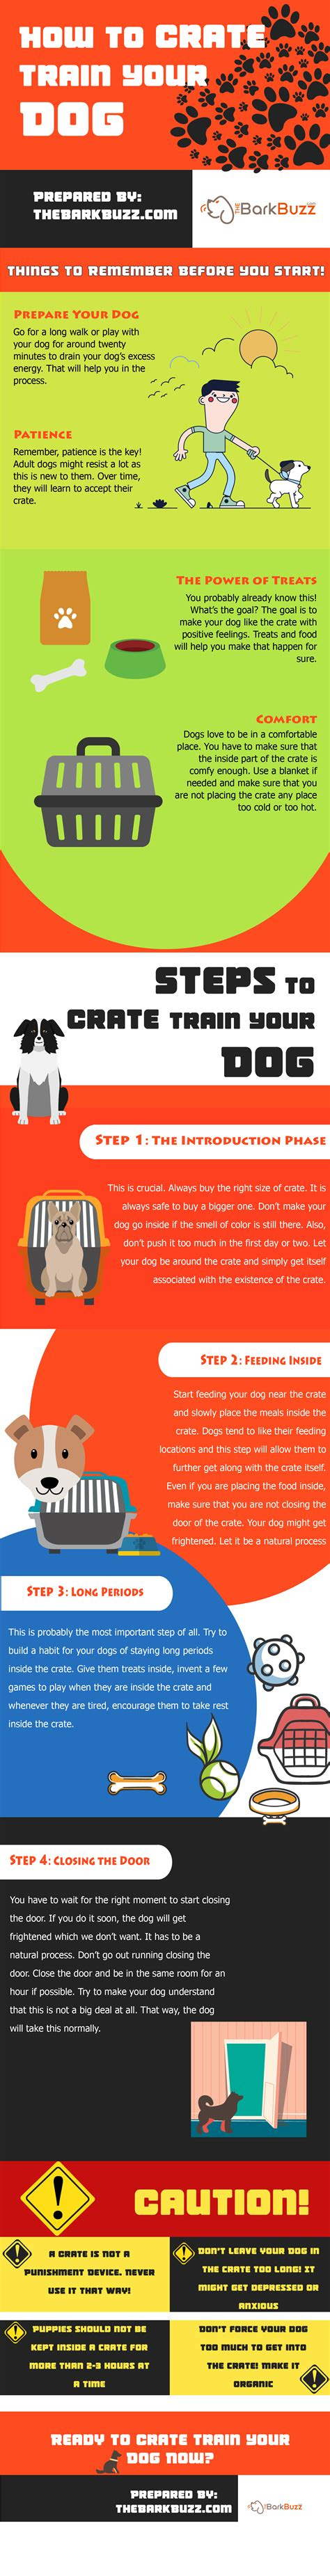 crate your puppy crate your thedogtrainingsecret